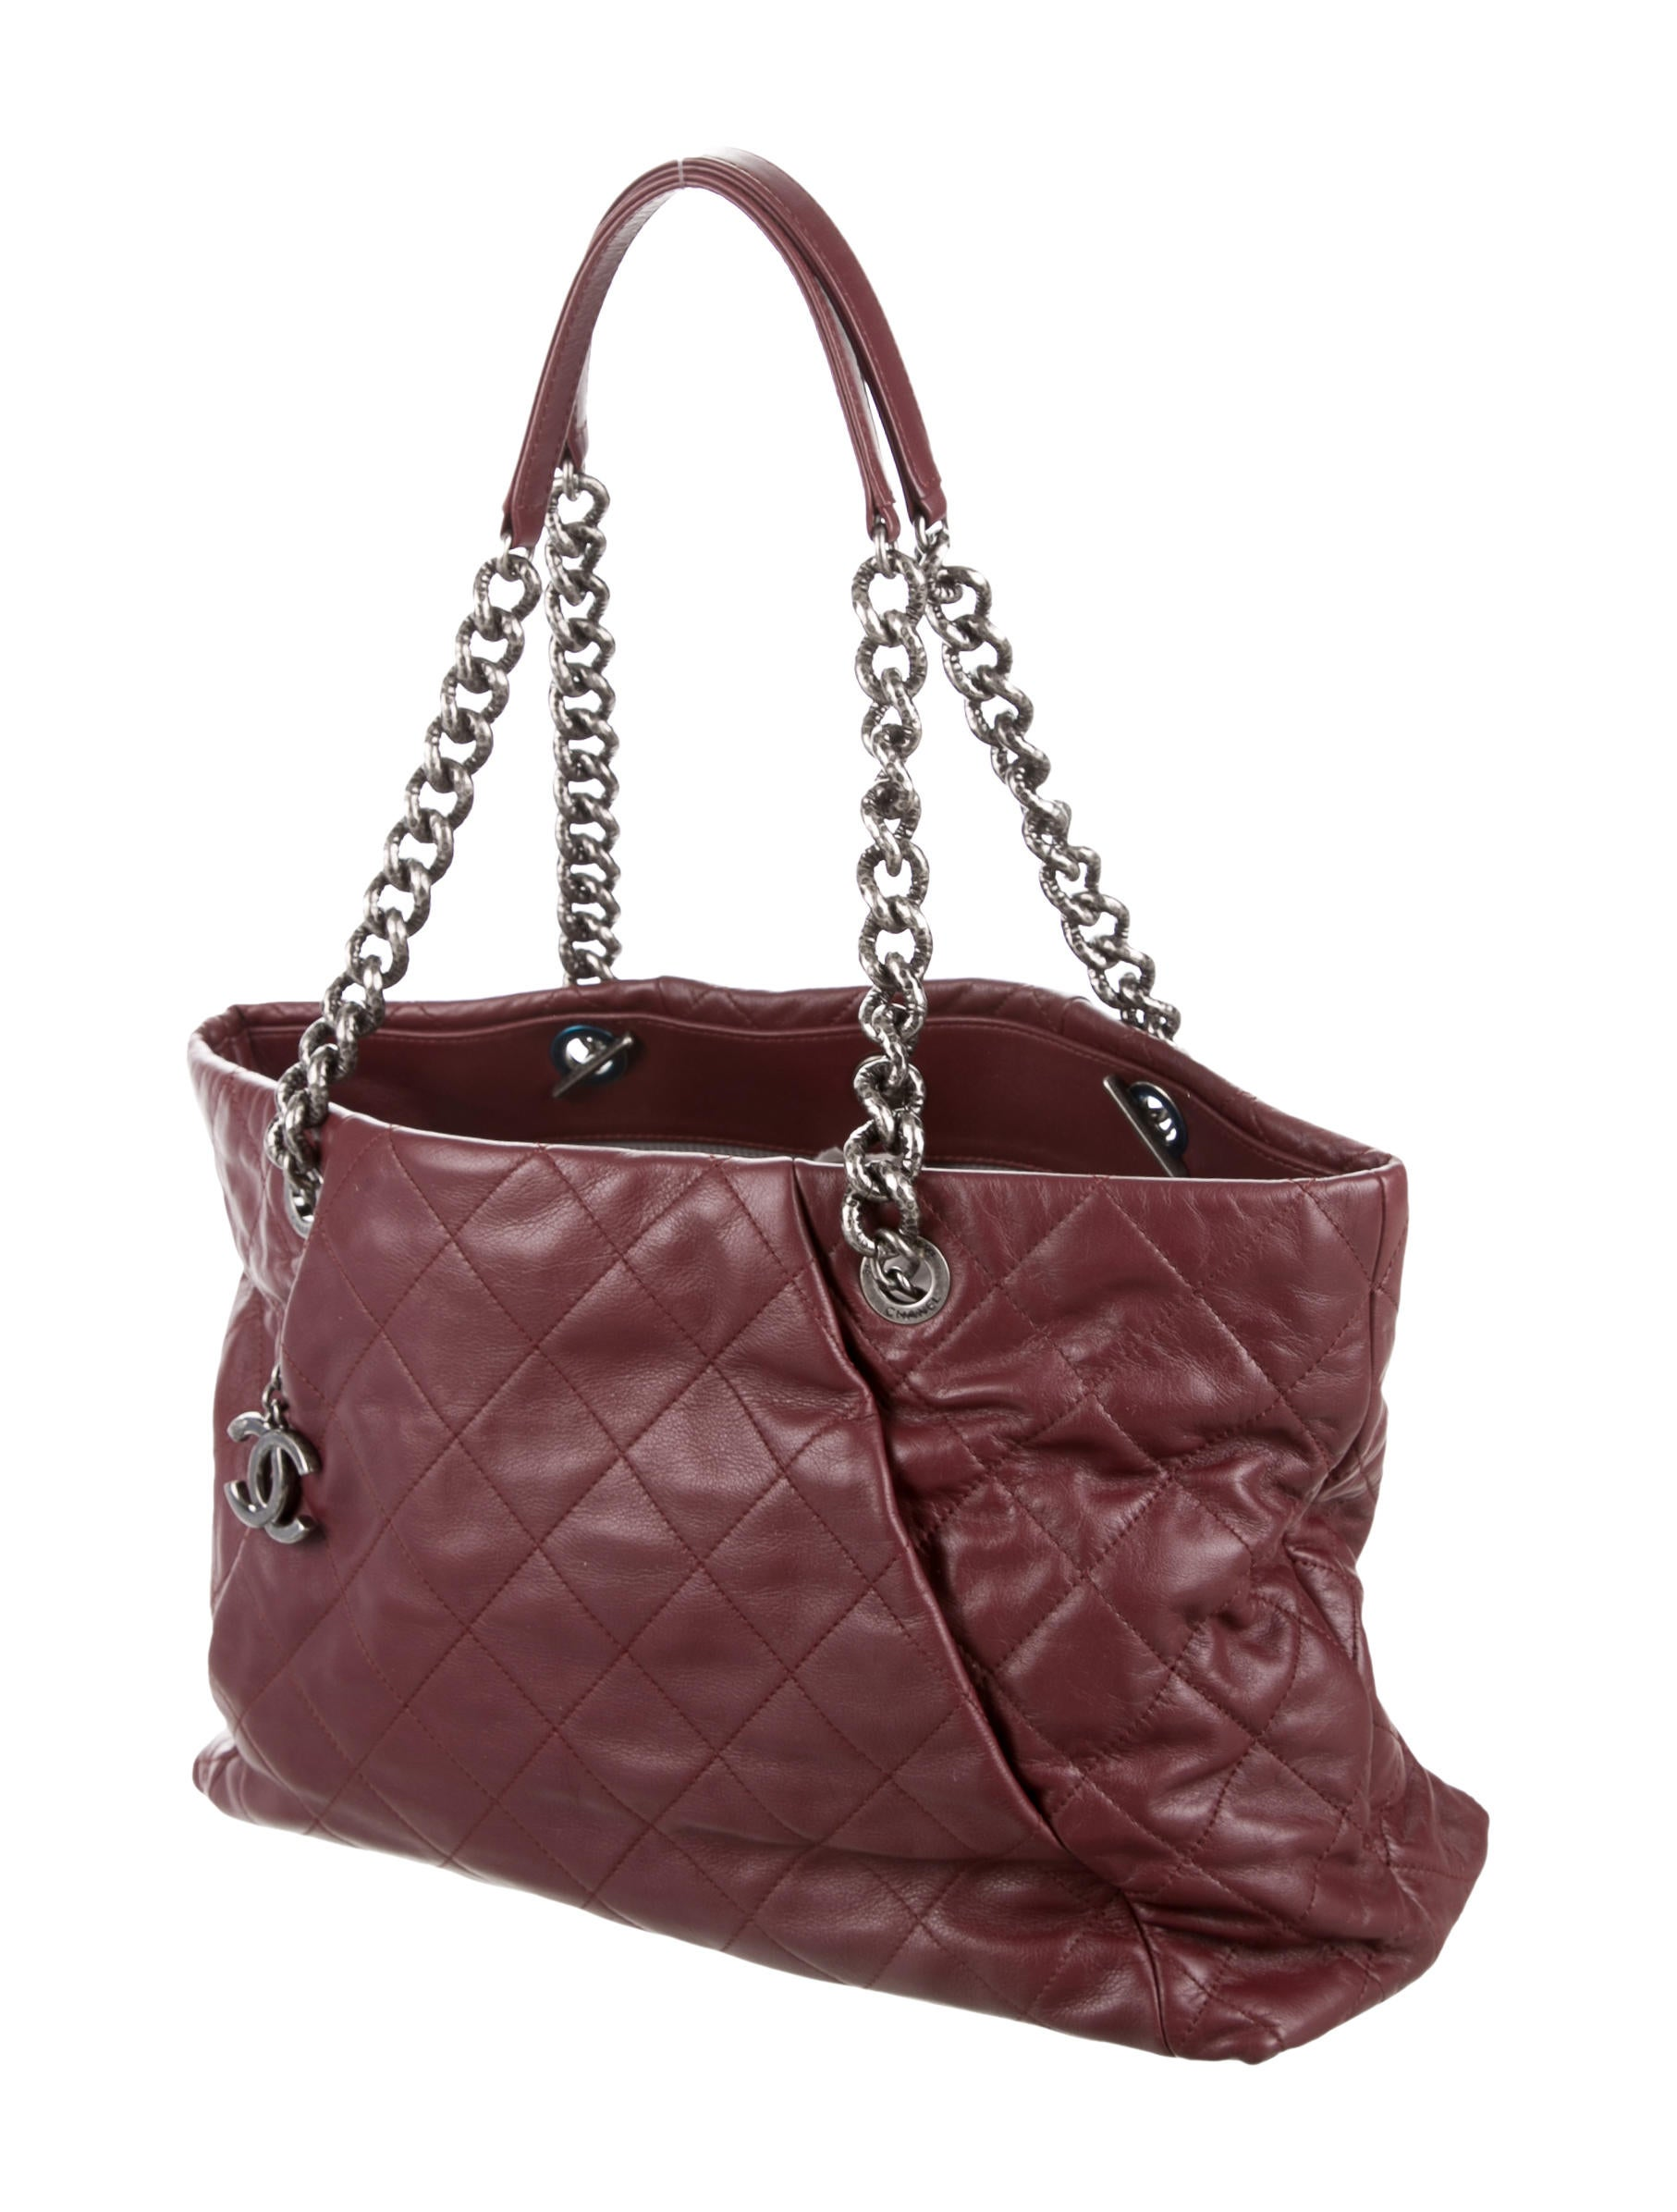 ac466ce9141c66 Coco Chanel Quilted Handbag | Stanford Center for Opportunity Policy ...